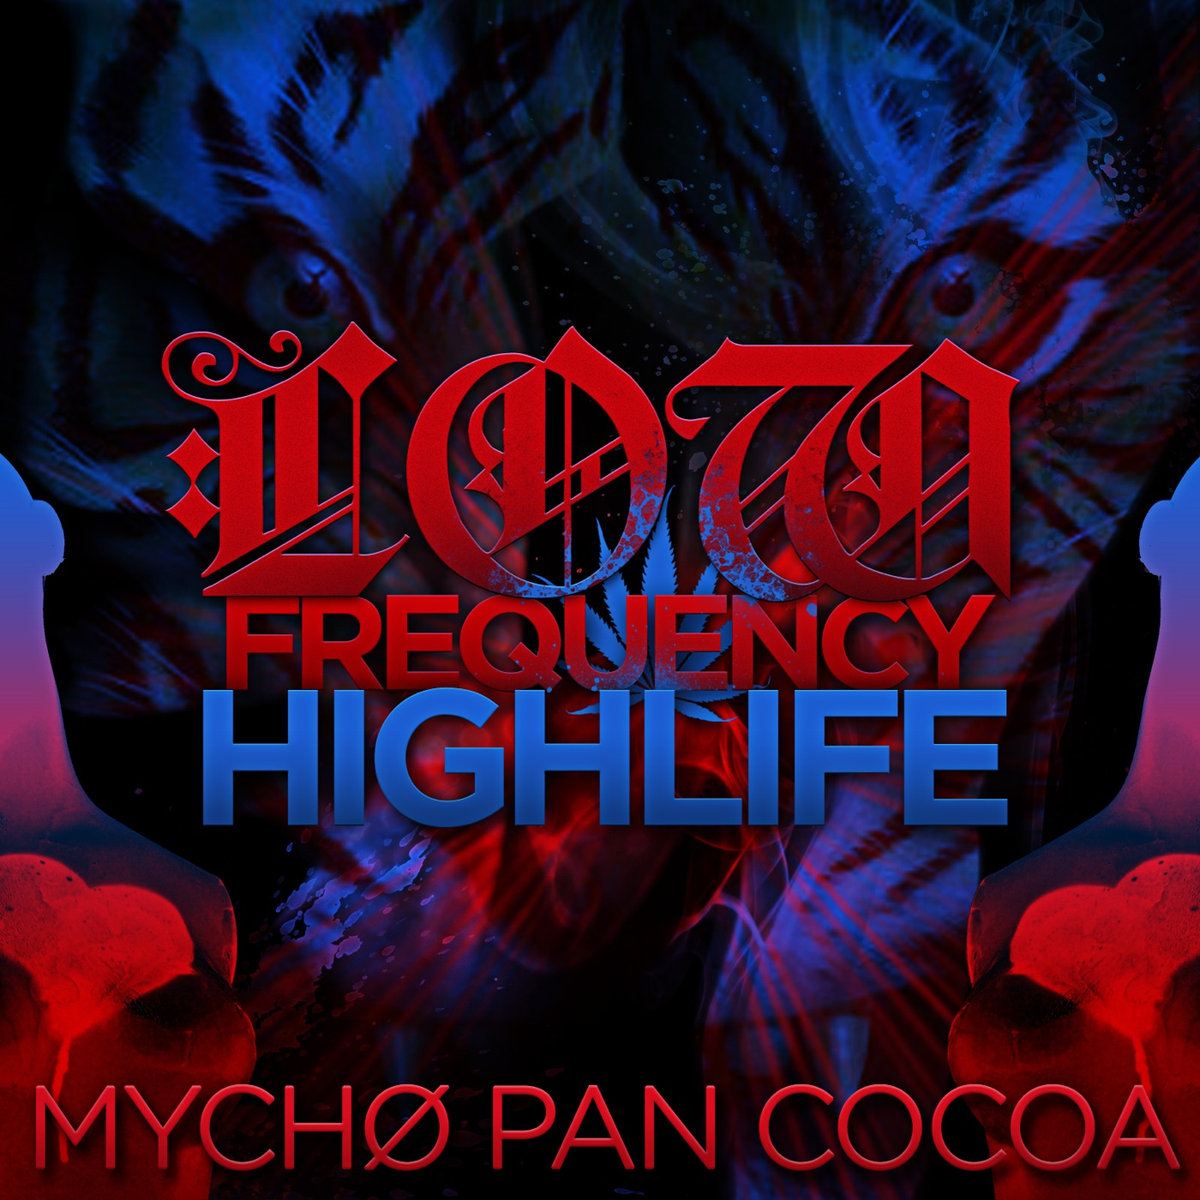 6Blocc - Bad Boy (Mycho Pan Cocoa Remix) @ 'Low Frequency High Life' album (electronic, dubstep)